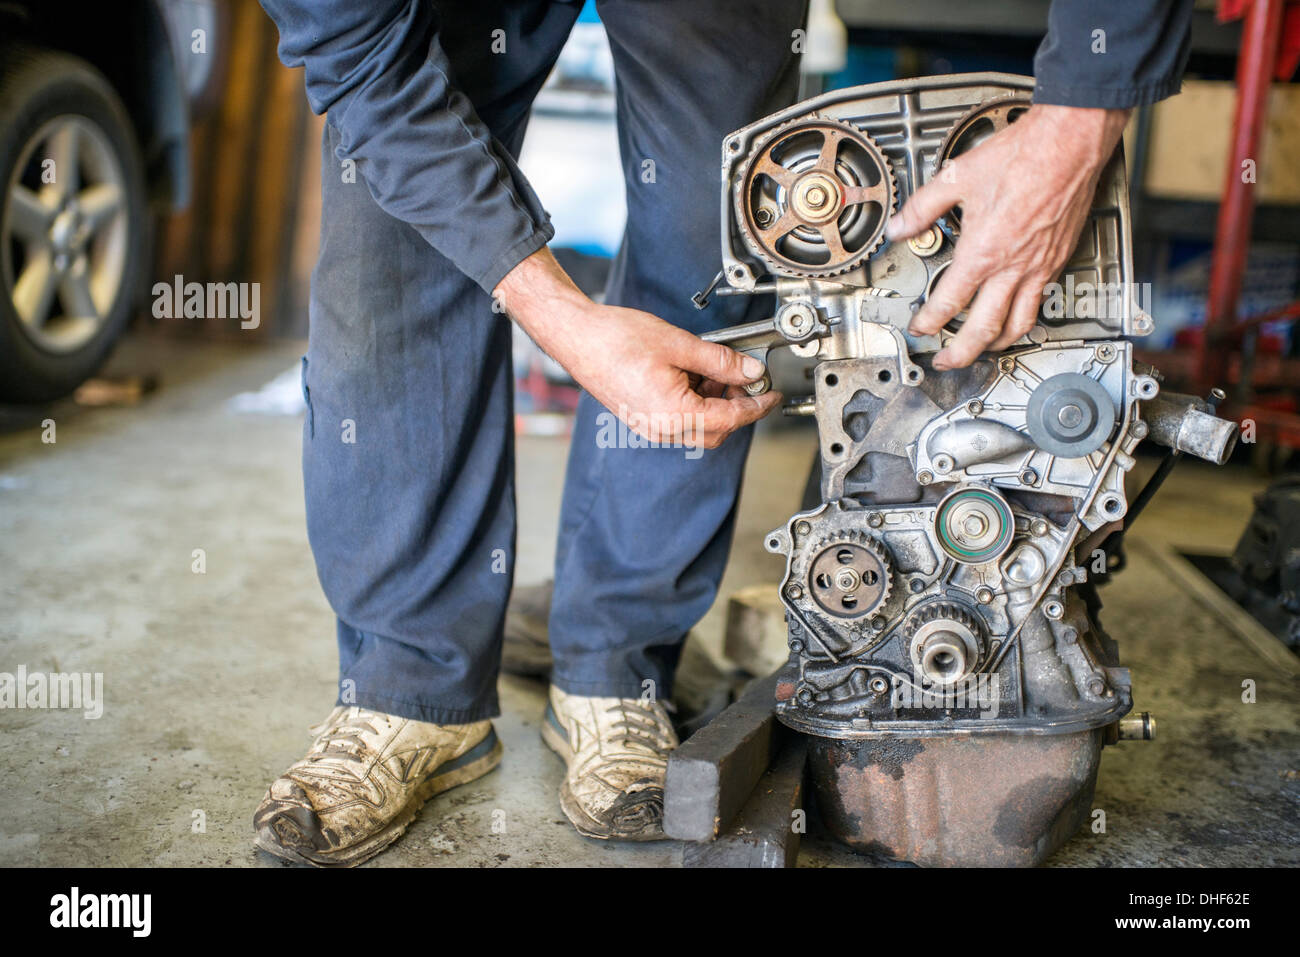 Mechanic working on car part - Stock Image